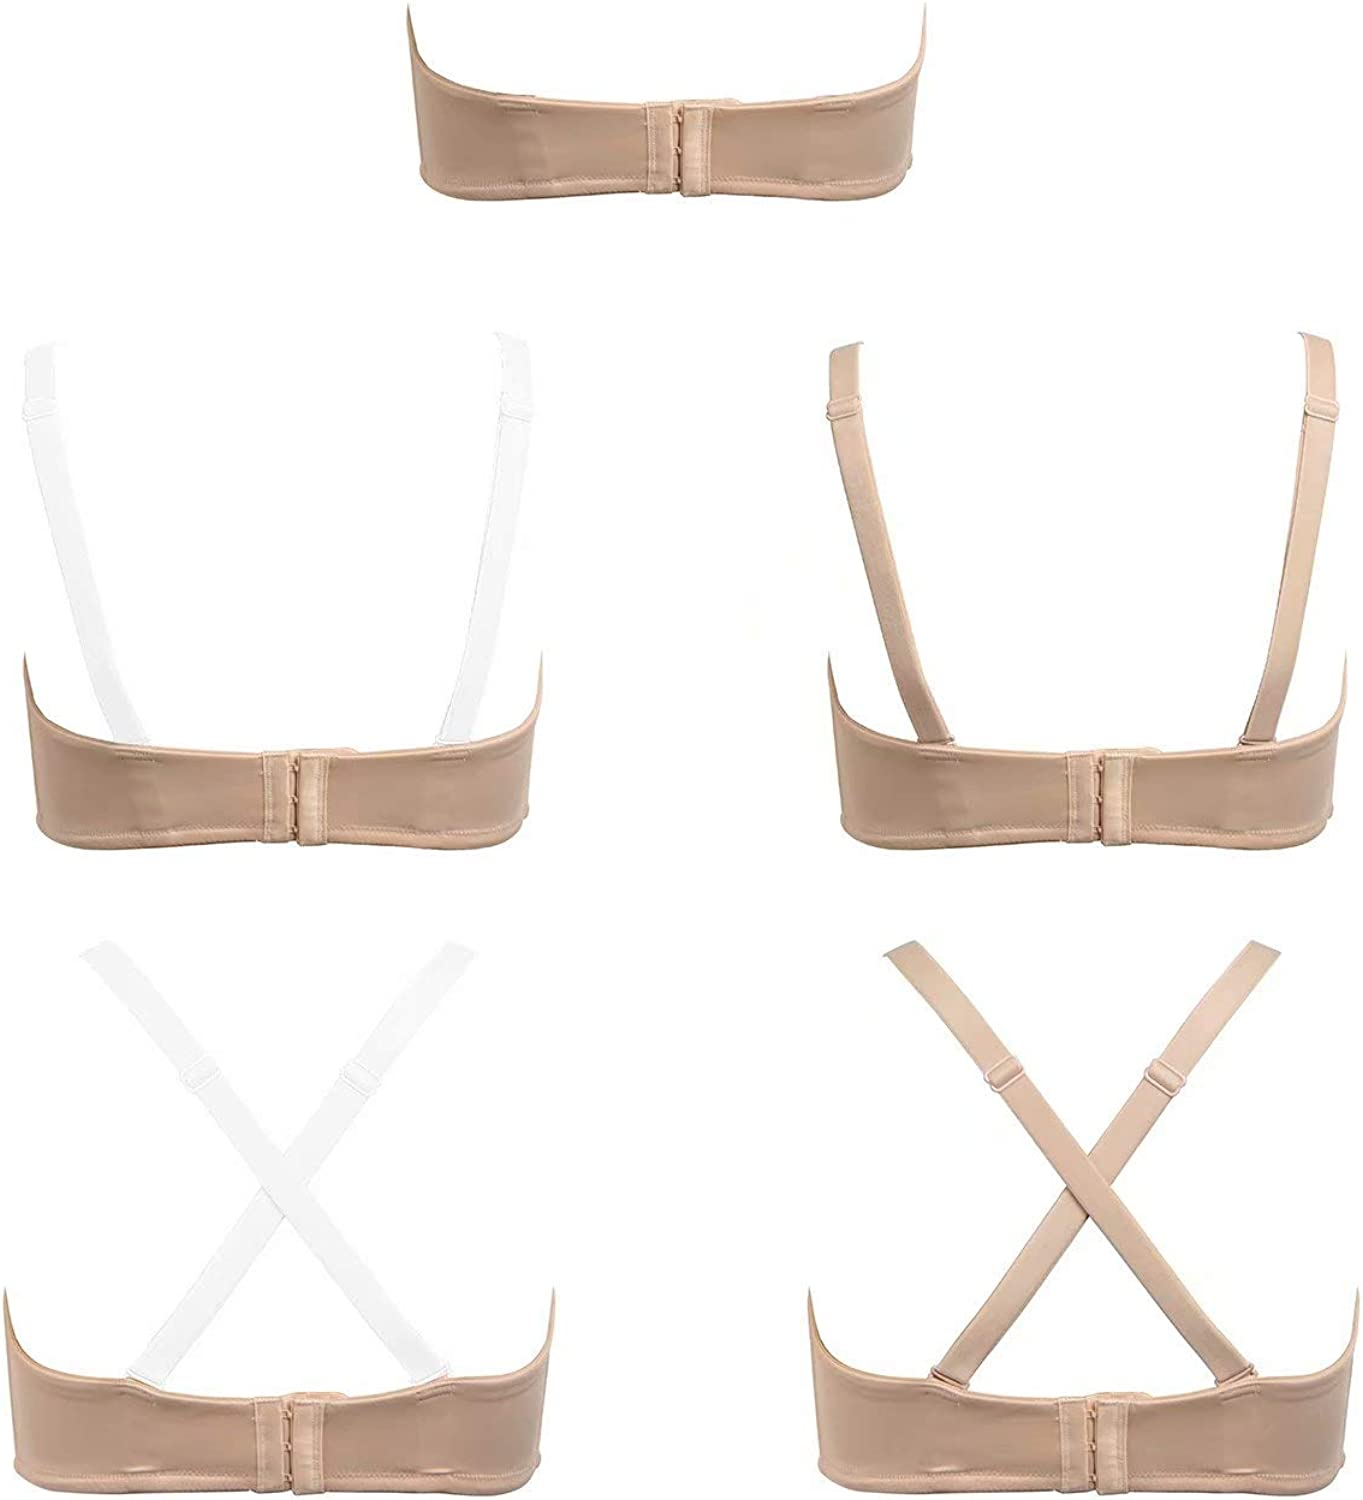 Vgplay Womens Underwire Strapless Minimizer Bra with Clear Straps and Removable Pads Smooth Convertible Bras Plus Size #6880